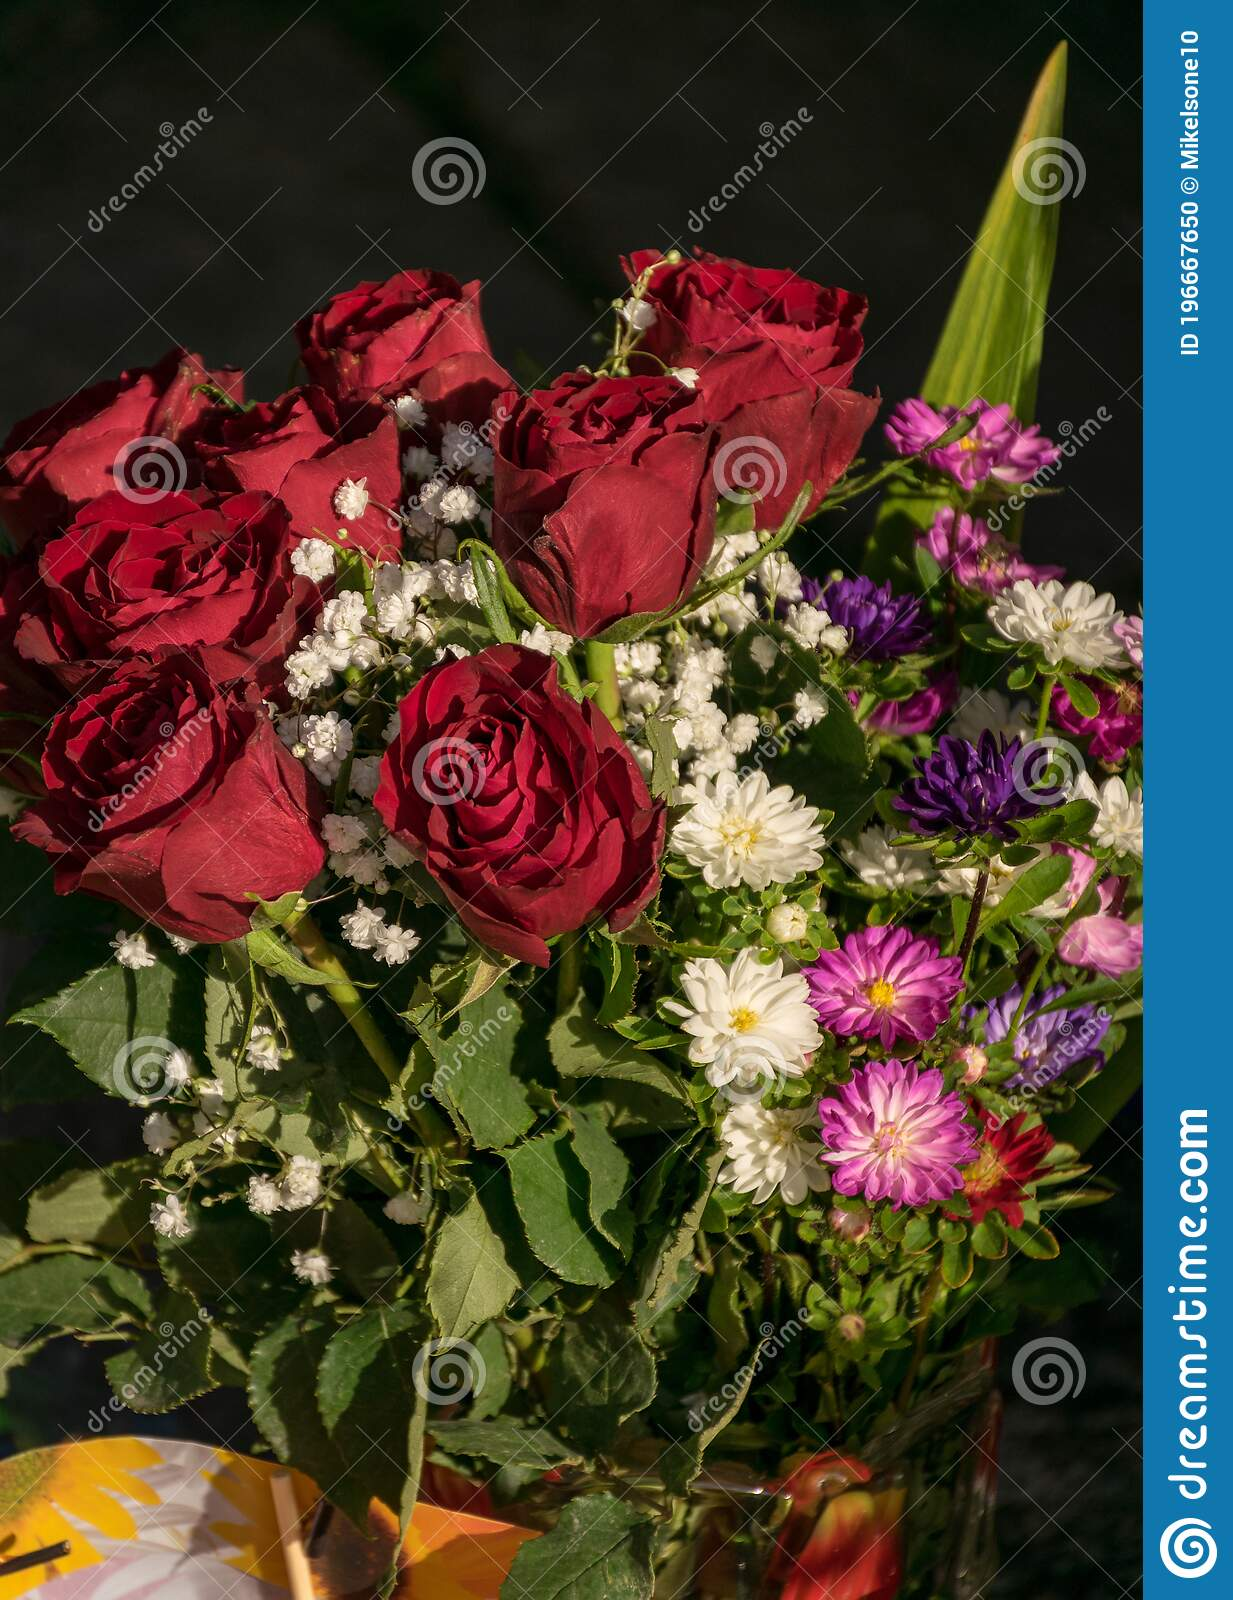 Colorful Bouquet For Birthday Parties Beautiful Decor Stock Photo Image Of Floral Birthday 196667650